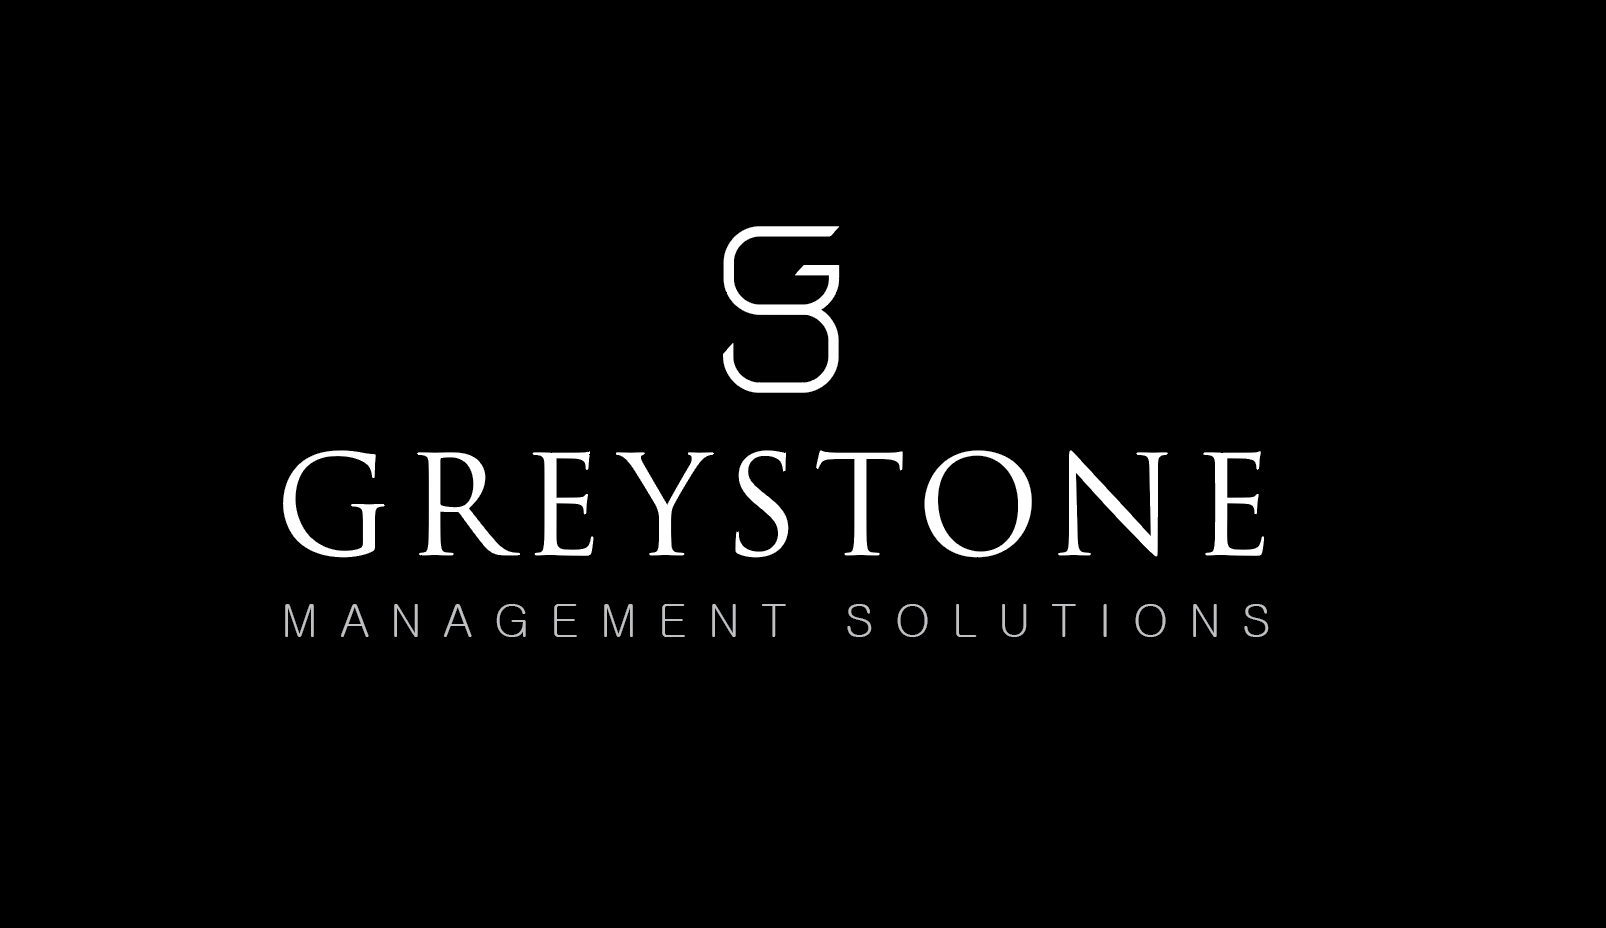 Greystone Management Solutions